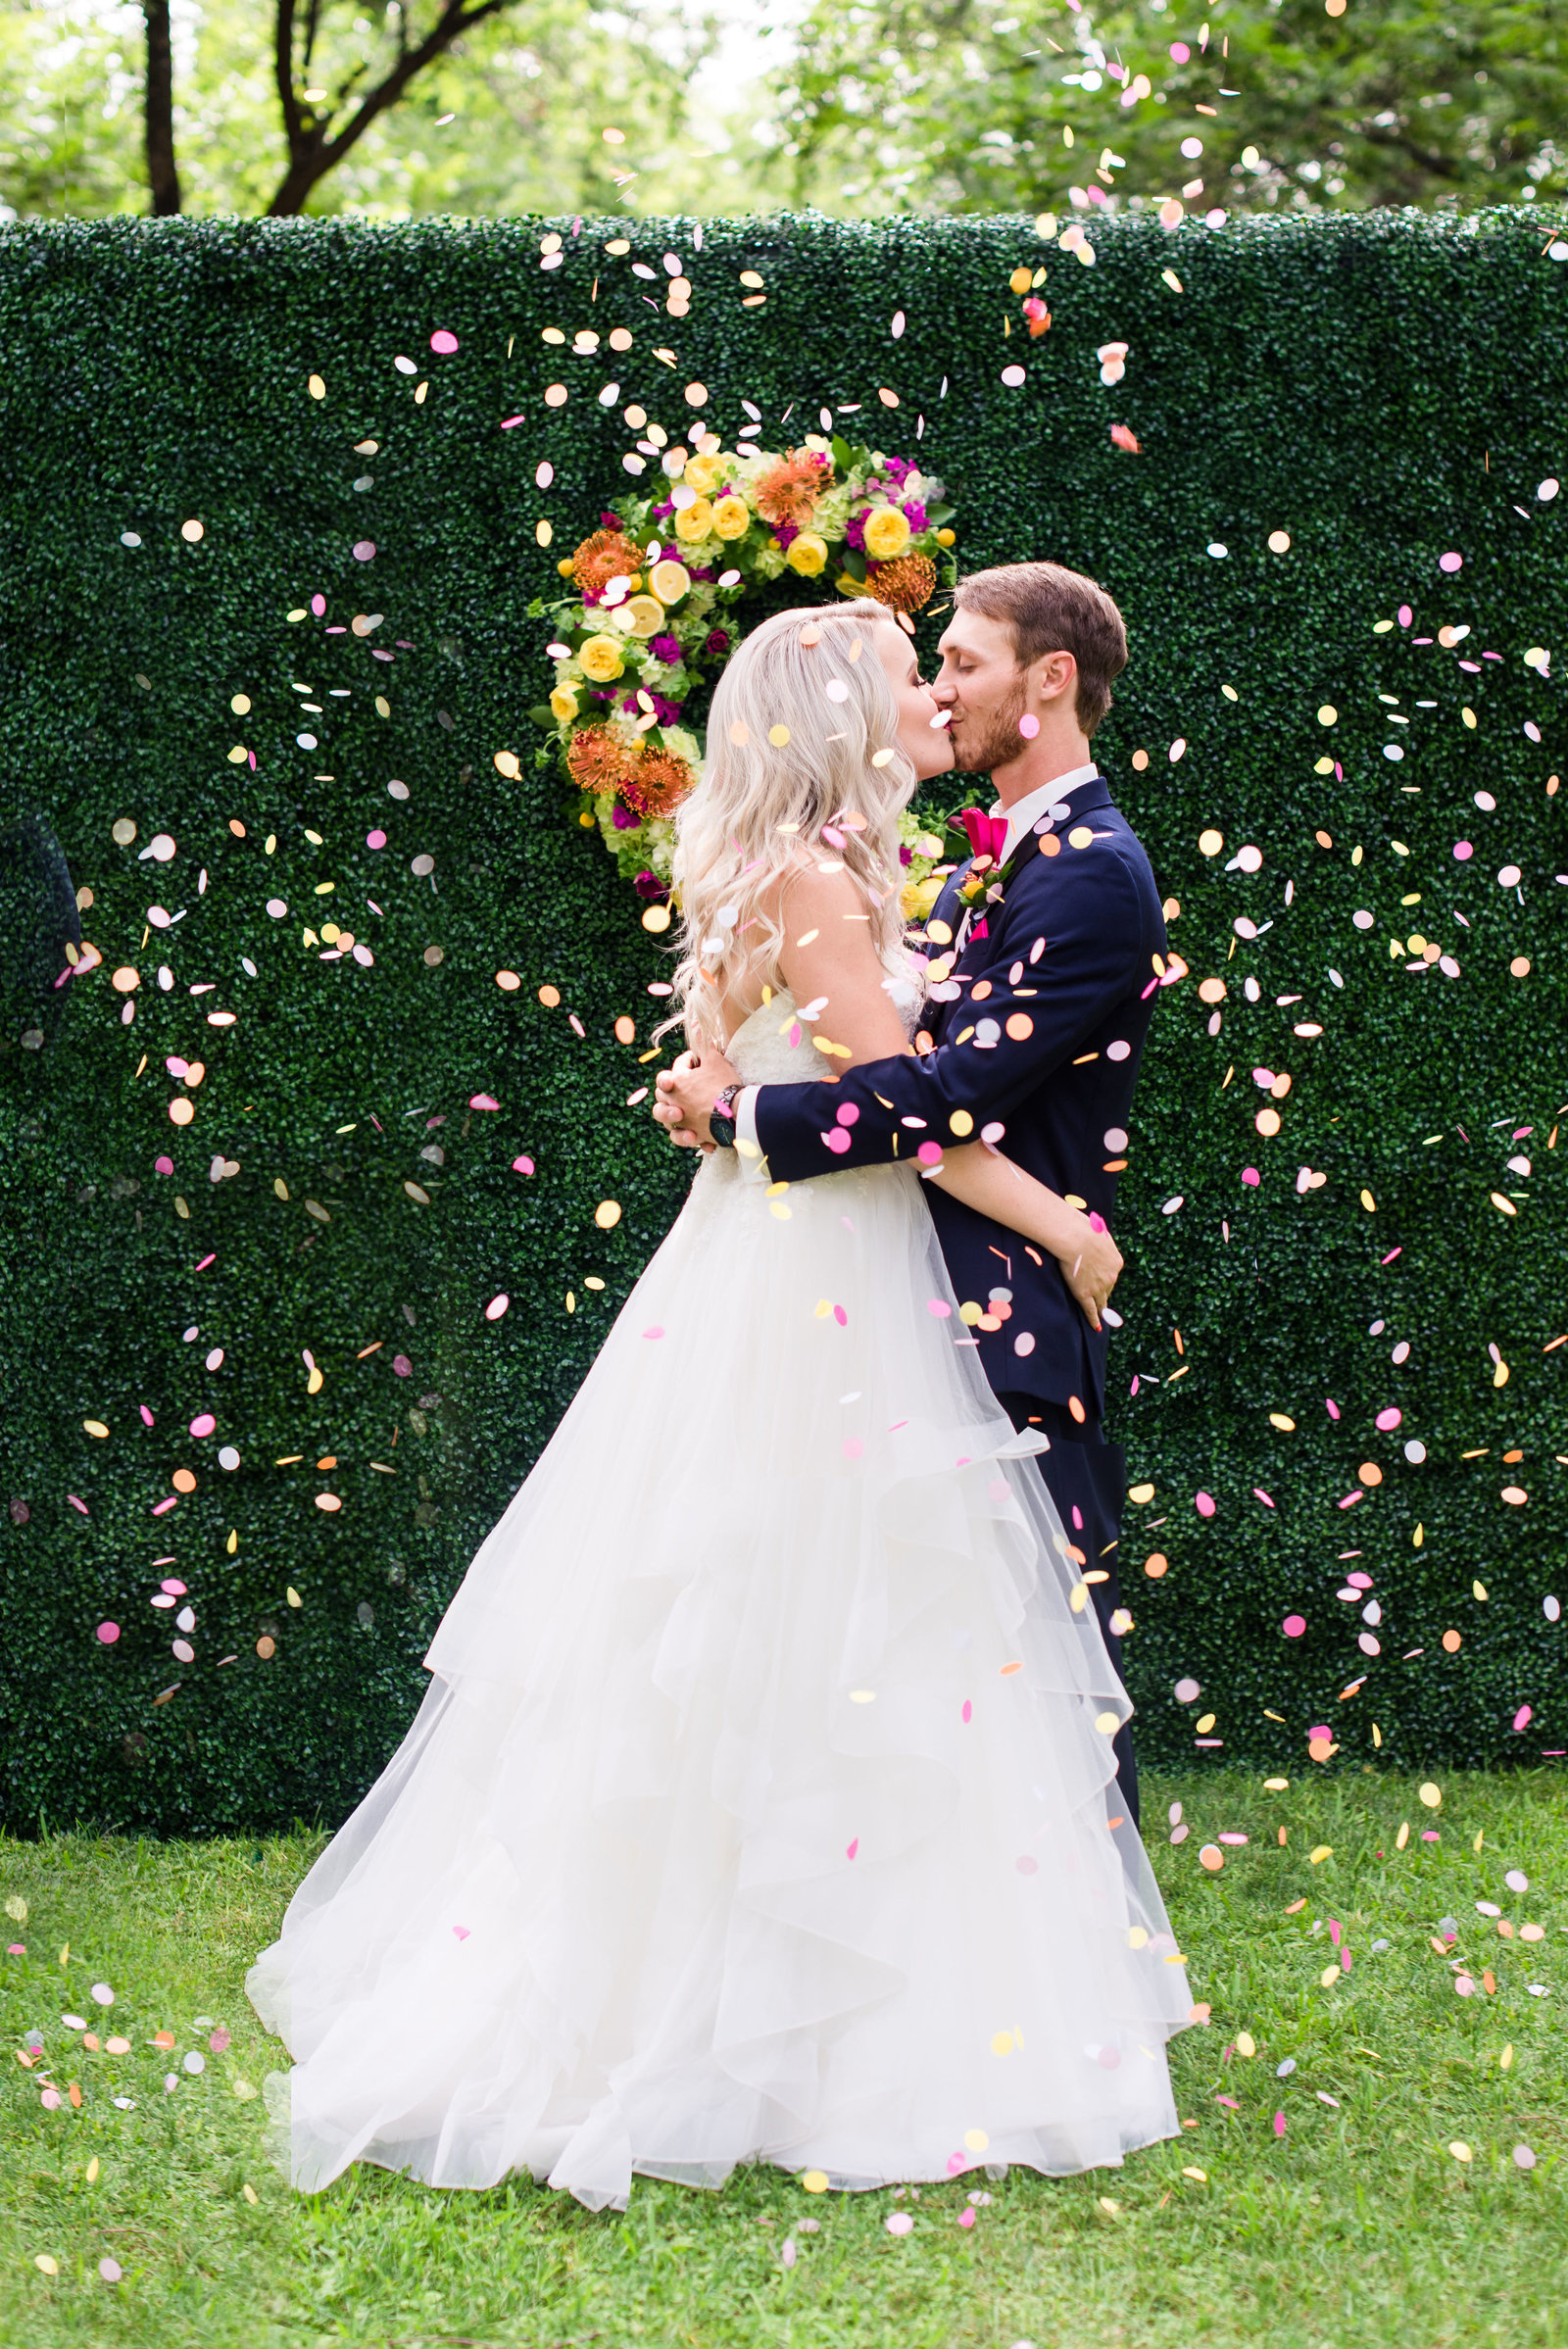 confetti-wedding-photo